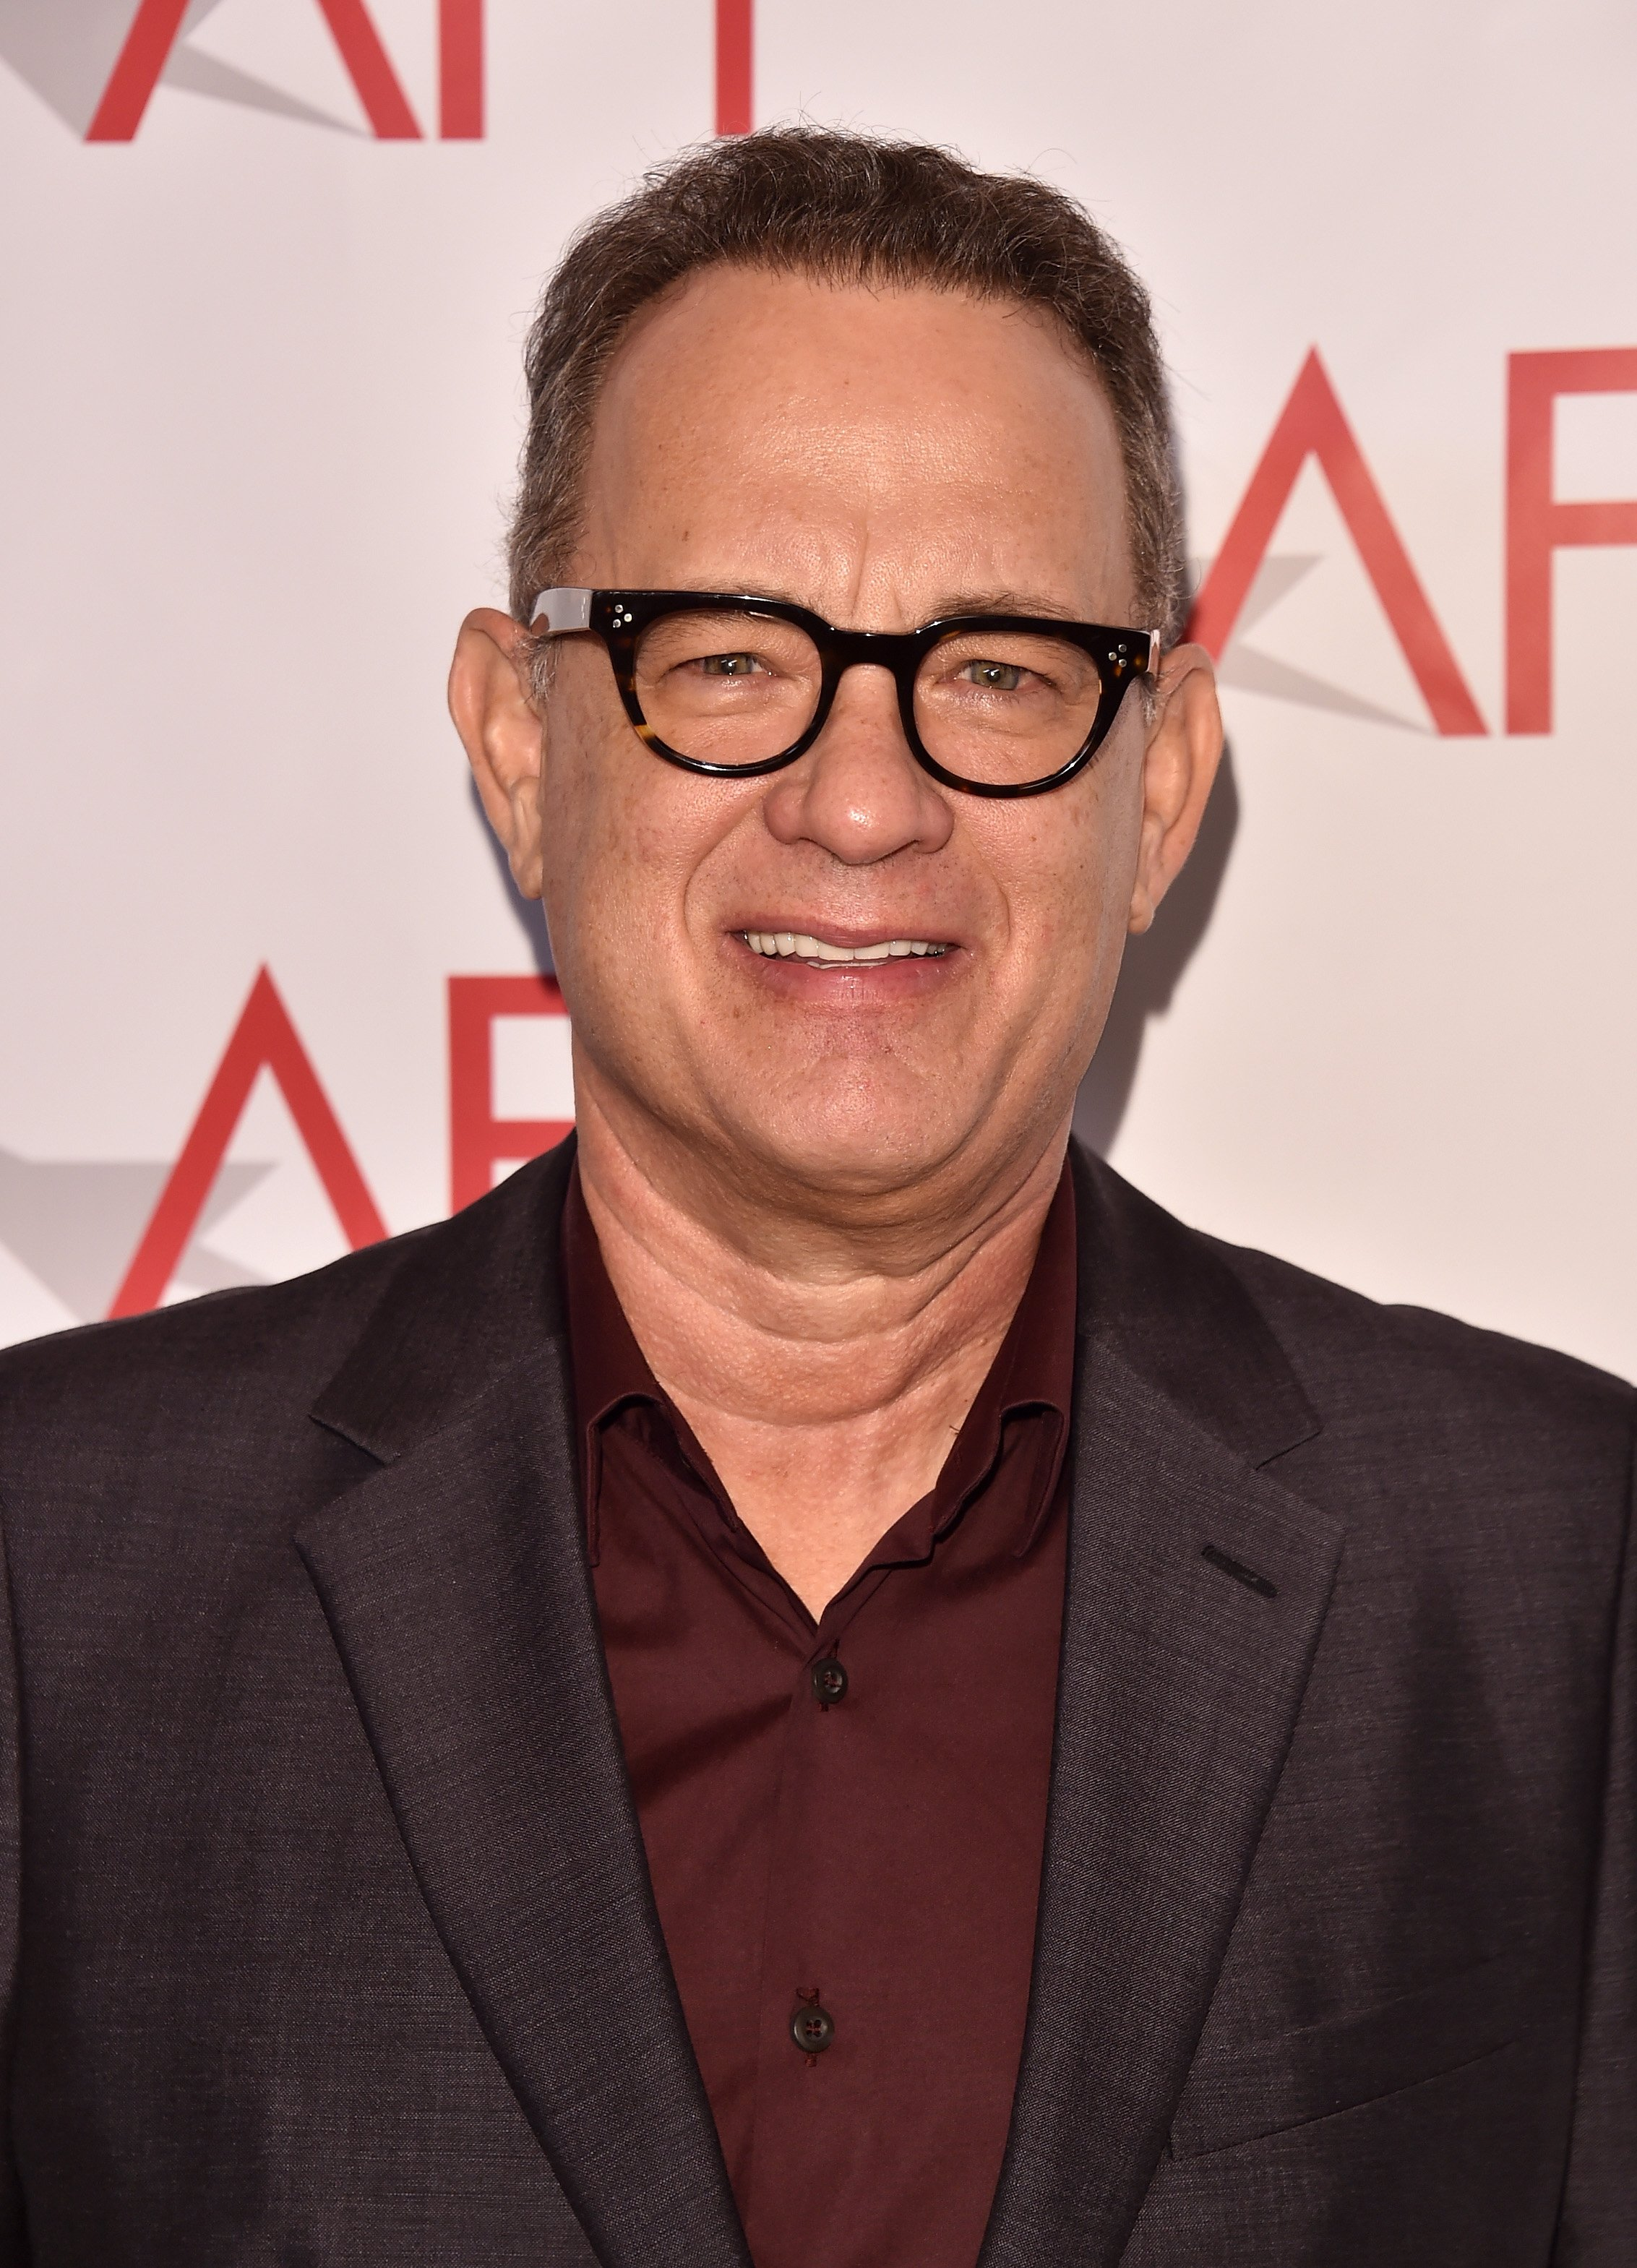 Tom Hanks attends the 18th Annual AFI Awards on January 5, 2018, in Los Angeles, California. | Source: Getty Images.